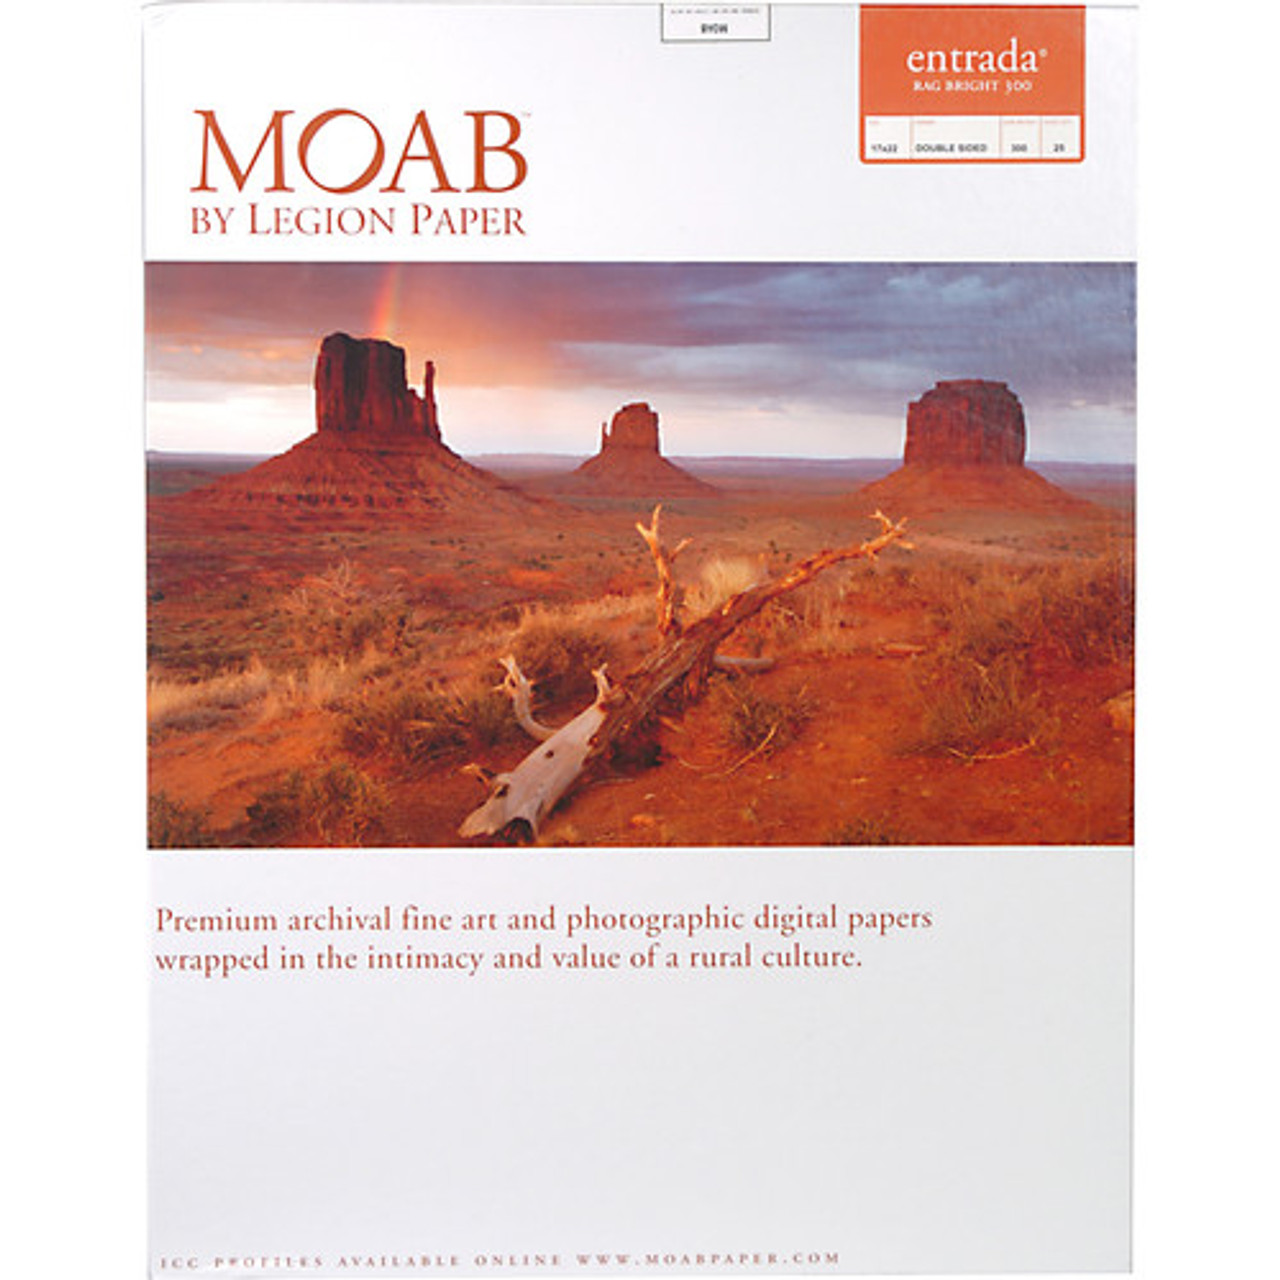 MOAB ENTRADA RAG BRIGHT 300 - DOUBLE SIDED (17X22 - 25 SHEETS)